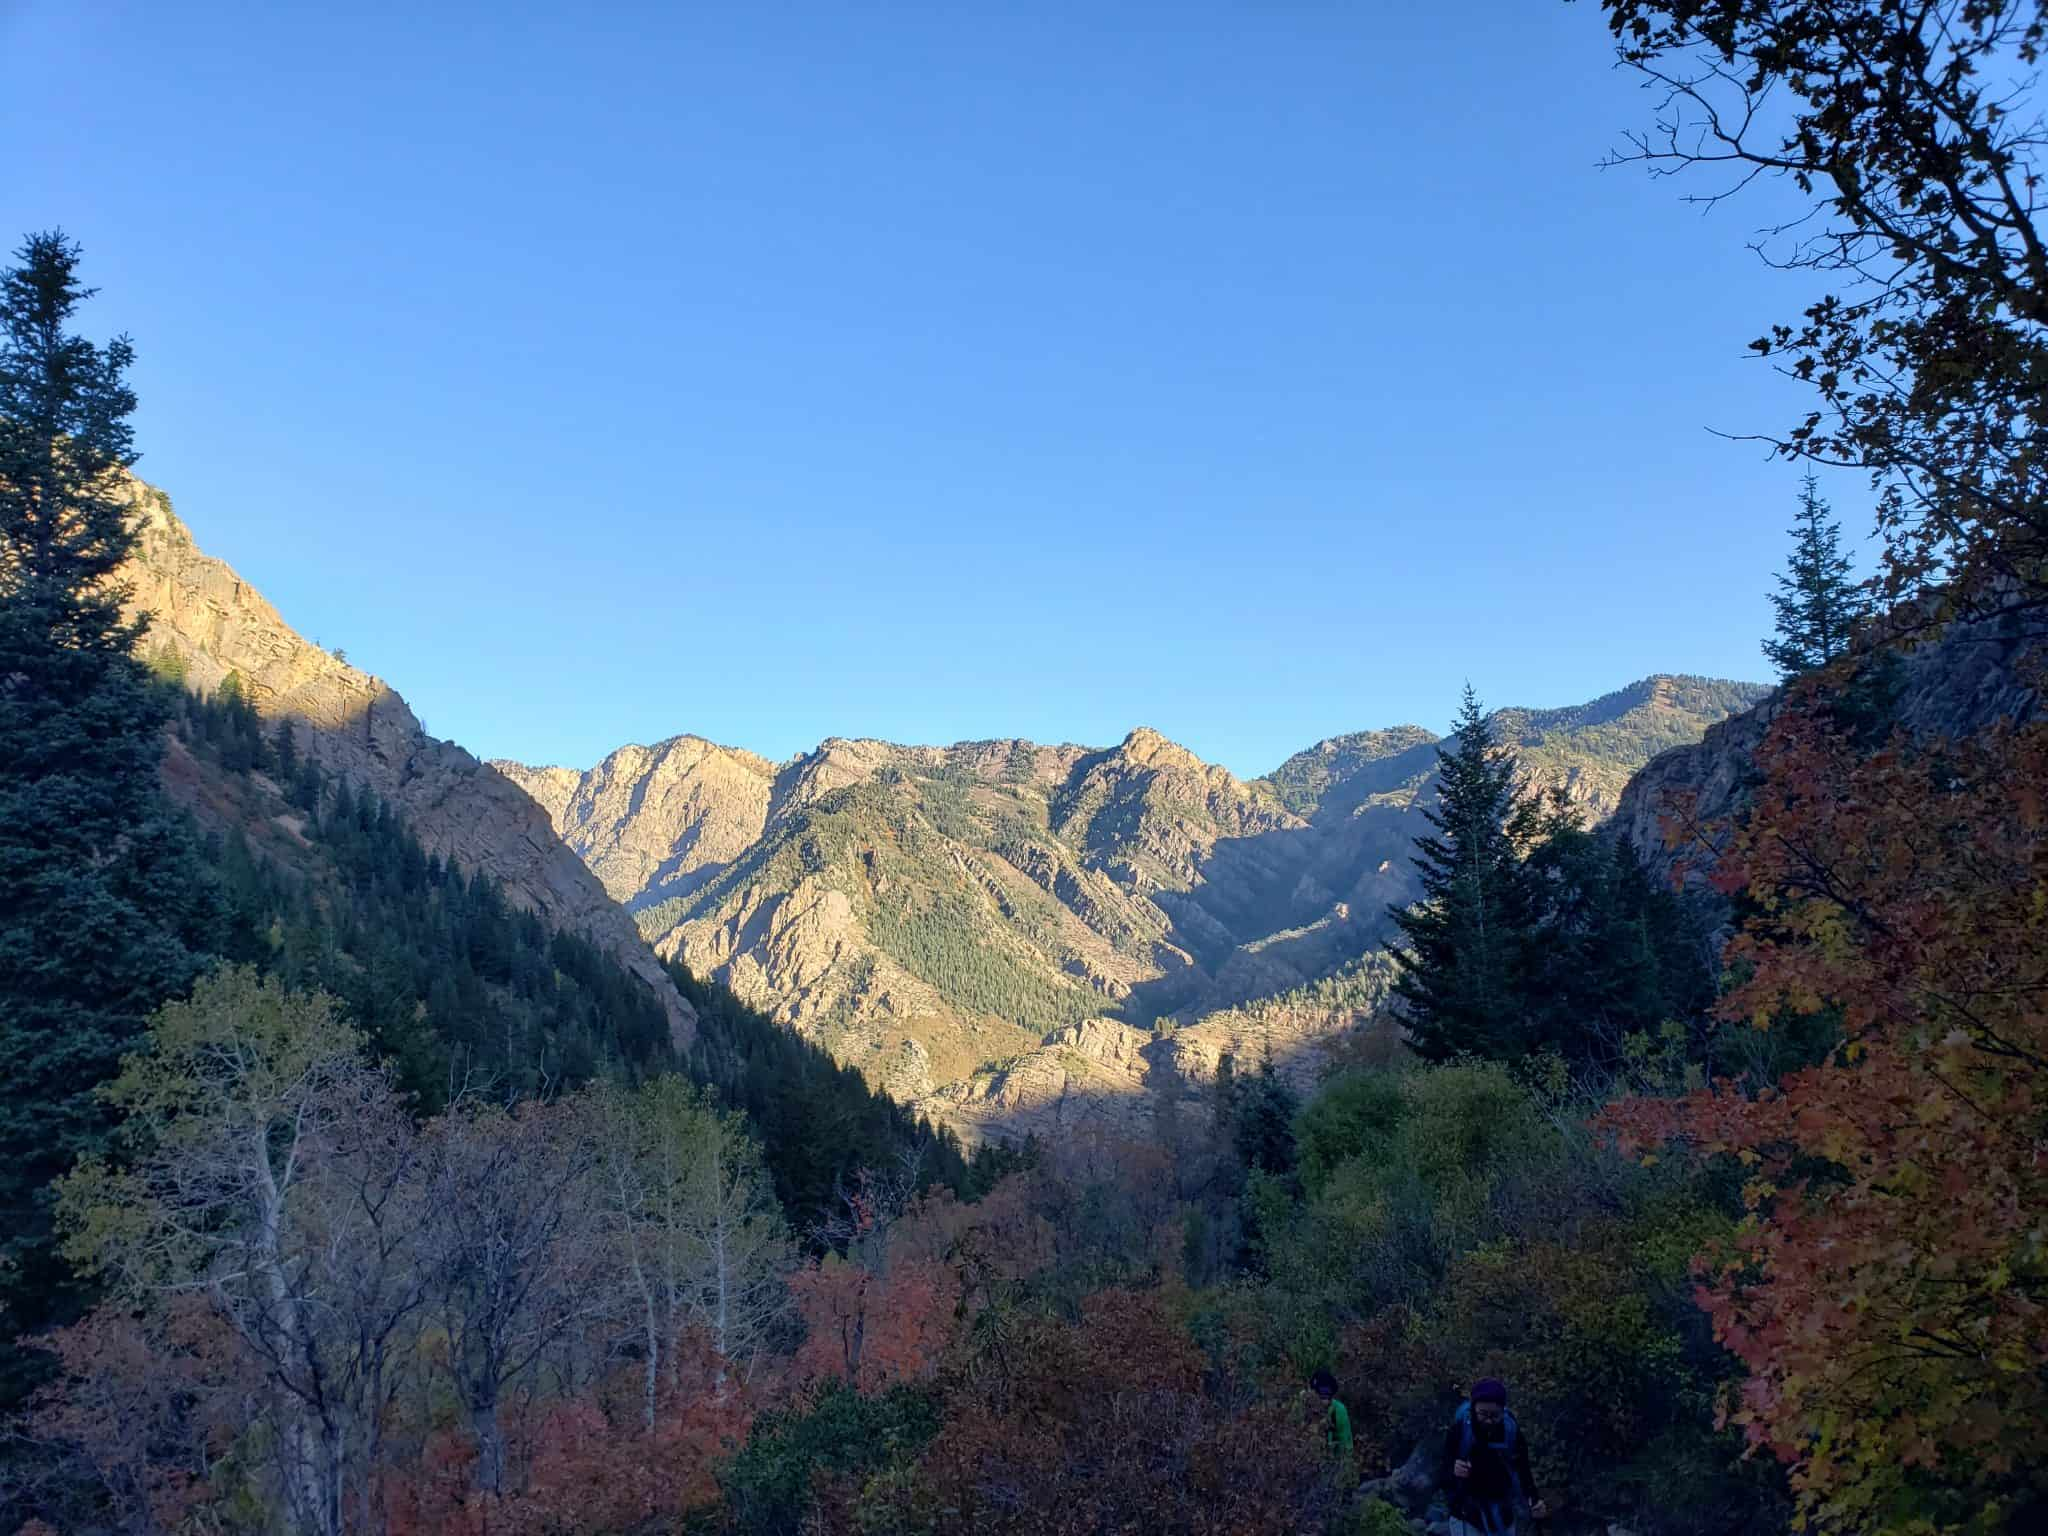 Lake Blanche Trail Beautiful fall colors in Big Cottonwood Canyon on the Lake Blanche Hiking Trail